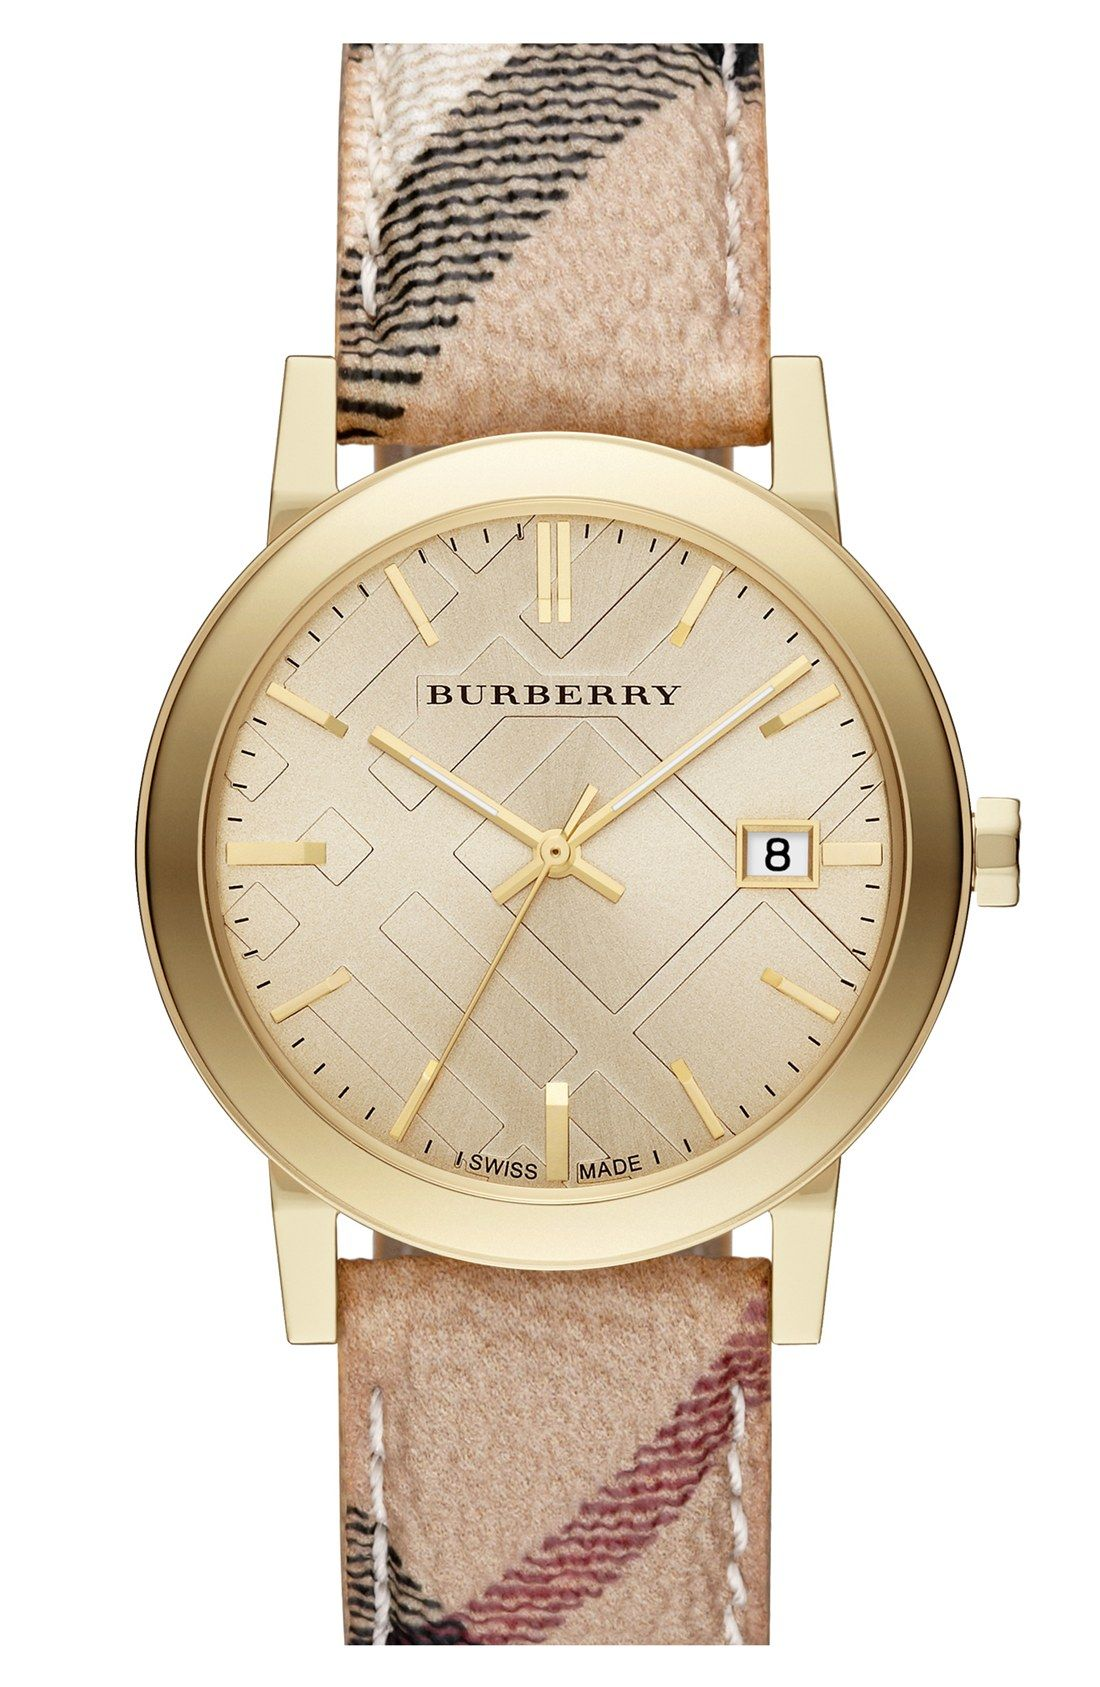 Fabulous Burberry watch with a sapphire crystal face and ...